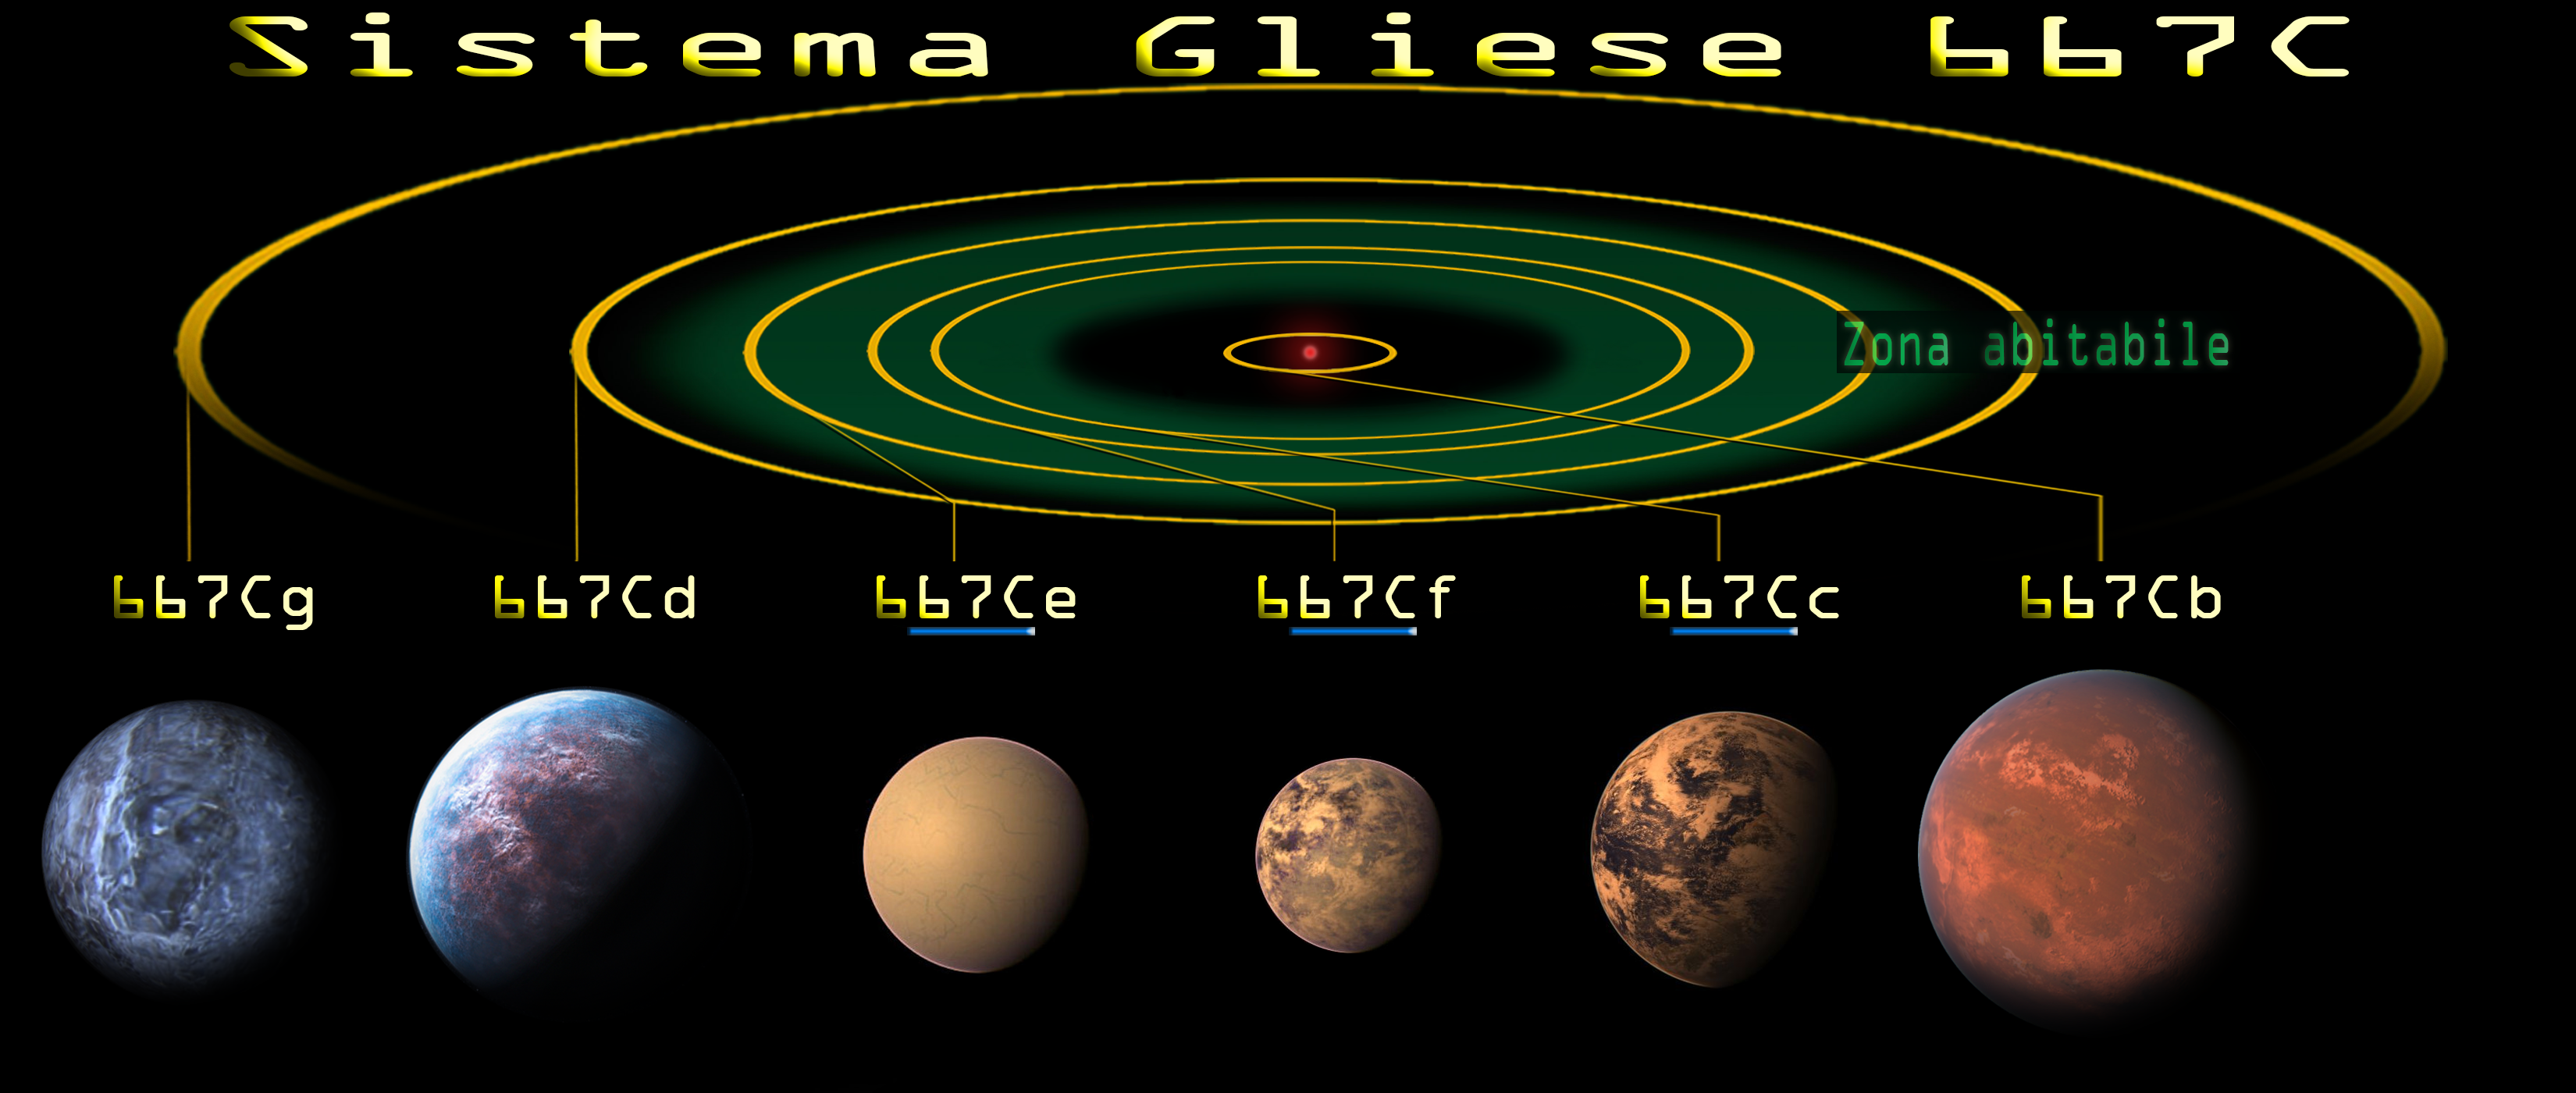 gliese 667cc on gravity - photo #31